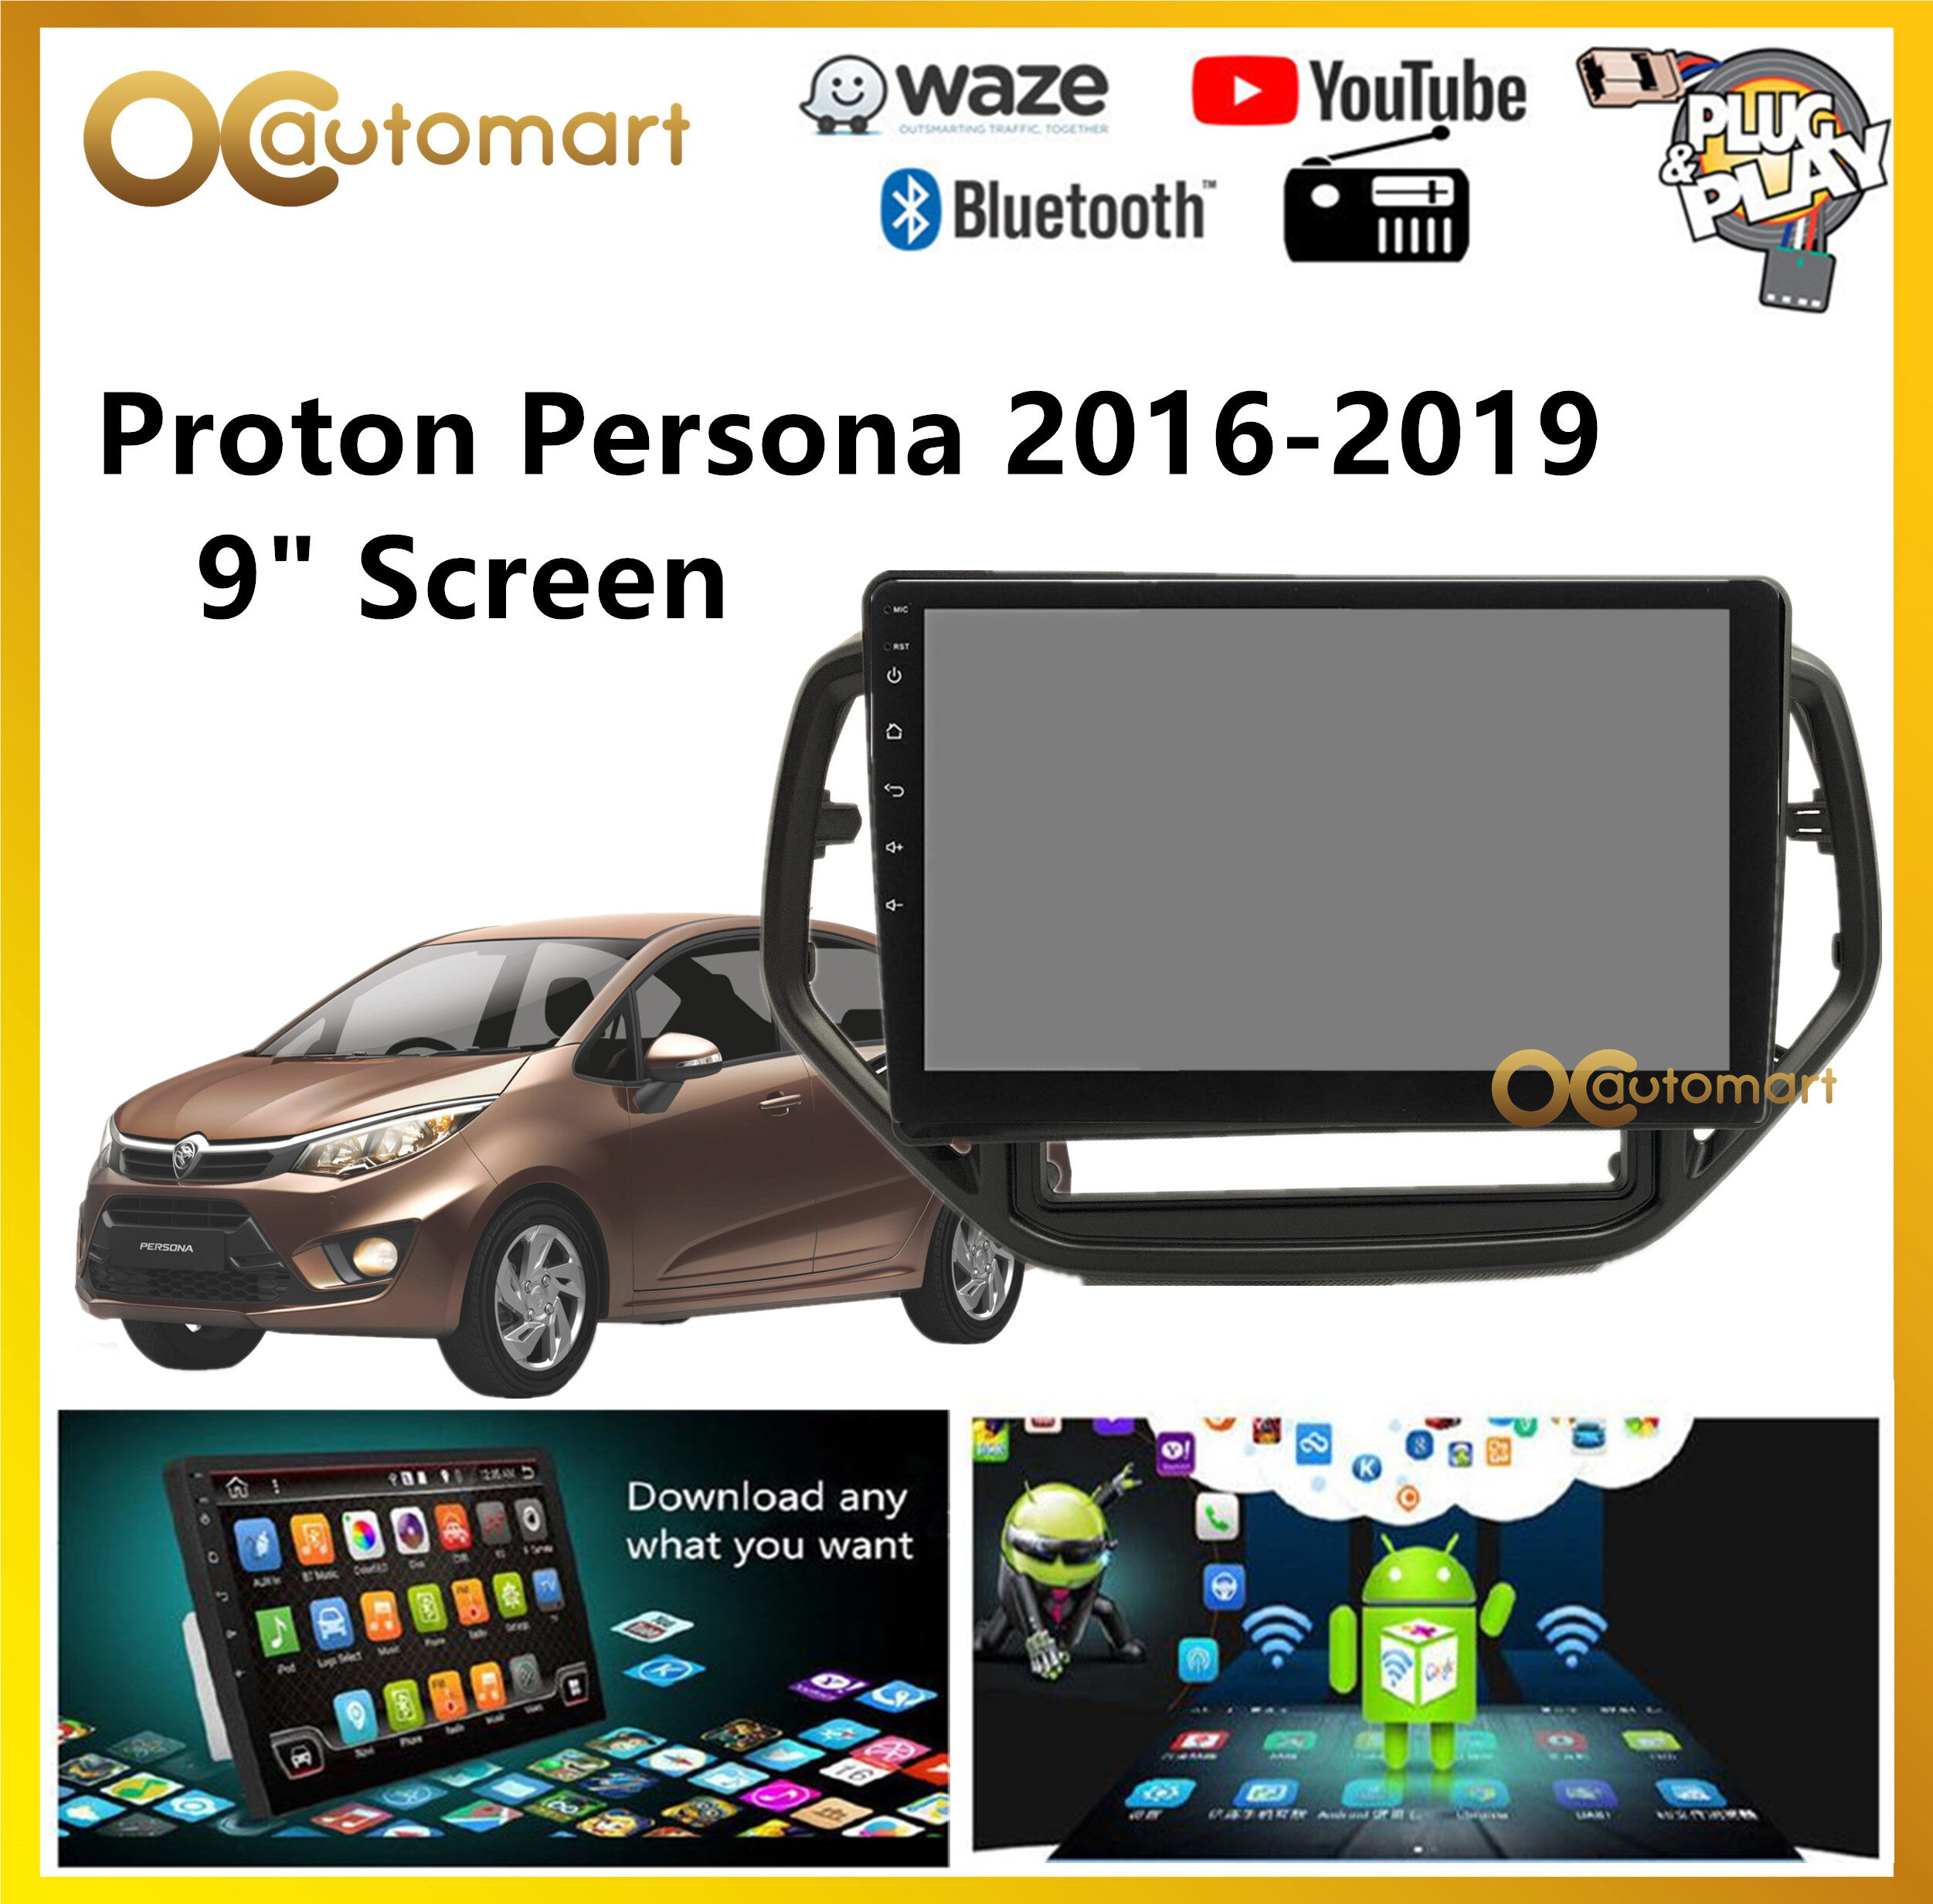 Proton Persona 2016-2019 Big Screen 9  Plug and Play OEM Android Player Car Stereo With WIFI Video Player/TouchScreen